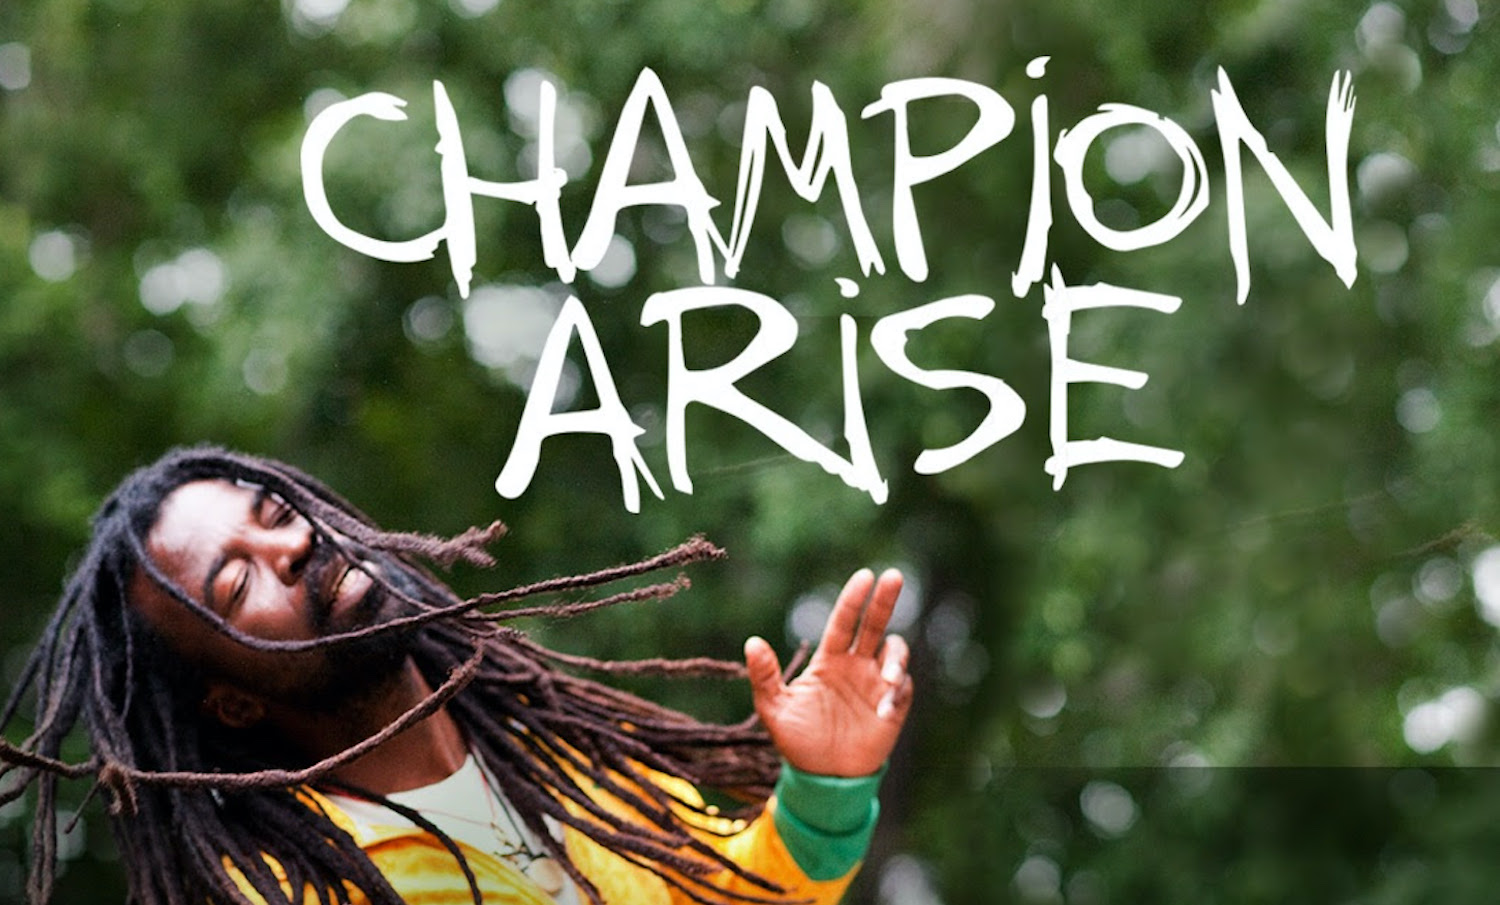 New Music Video from GRAMMY Nominee Rocky Dawuni